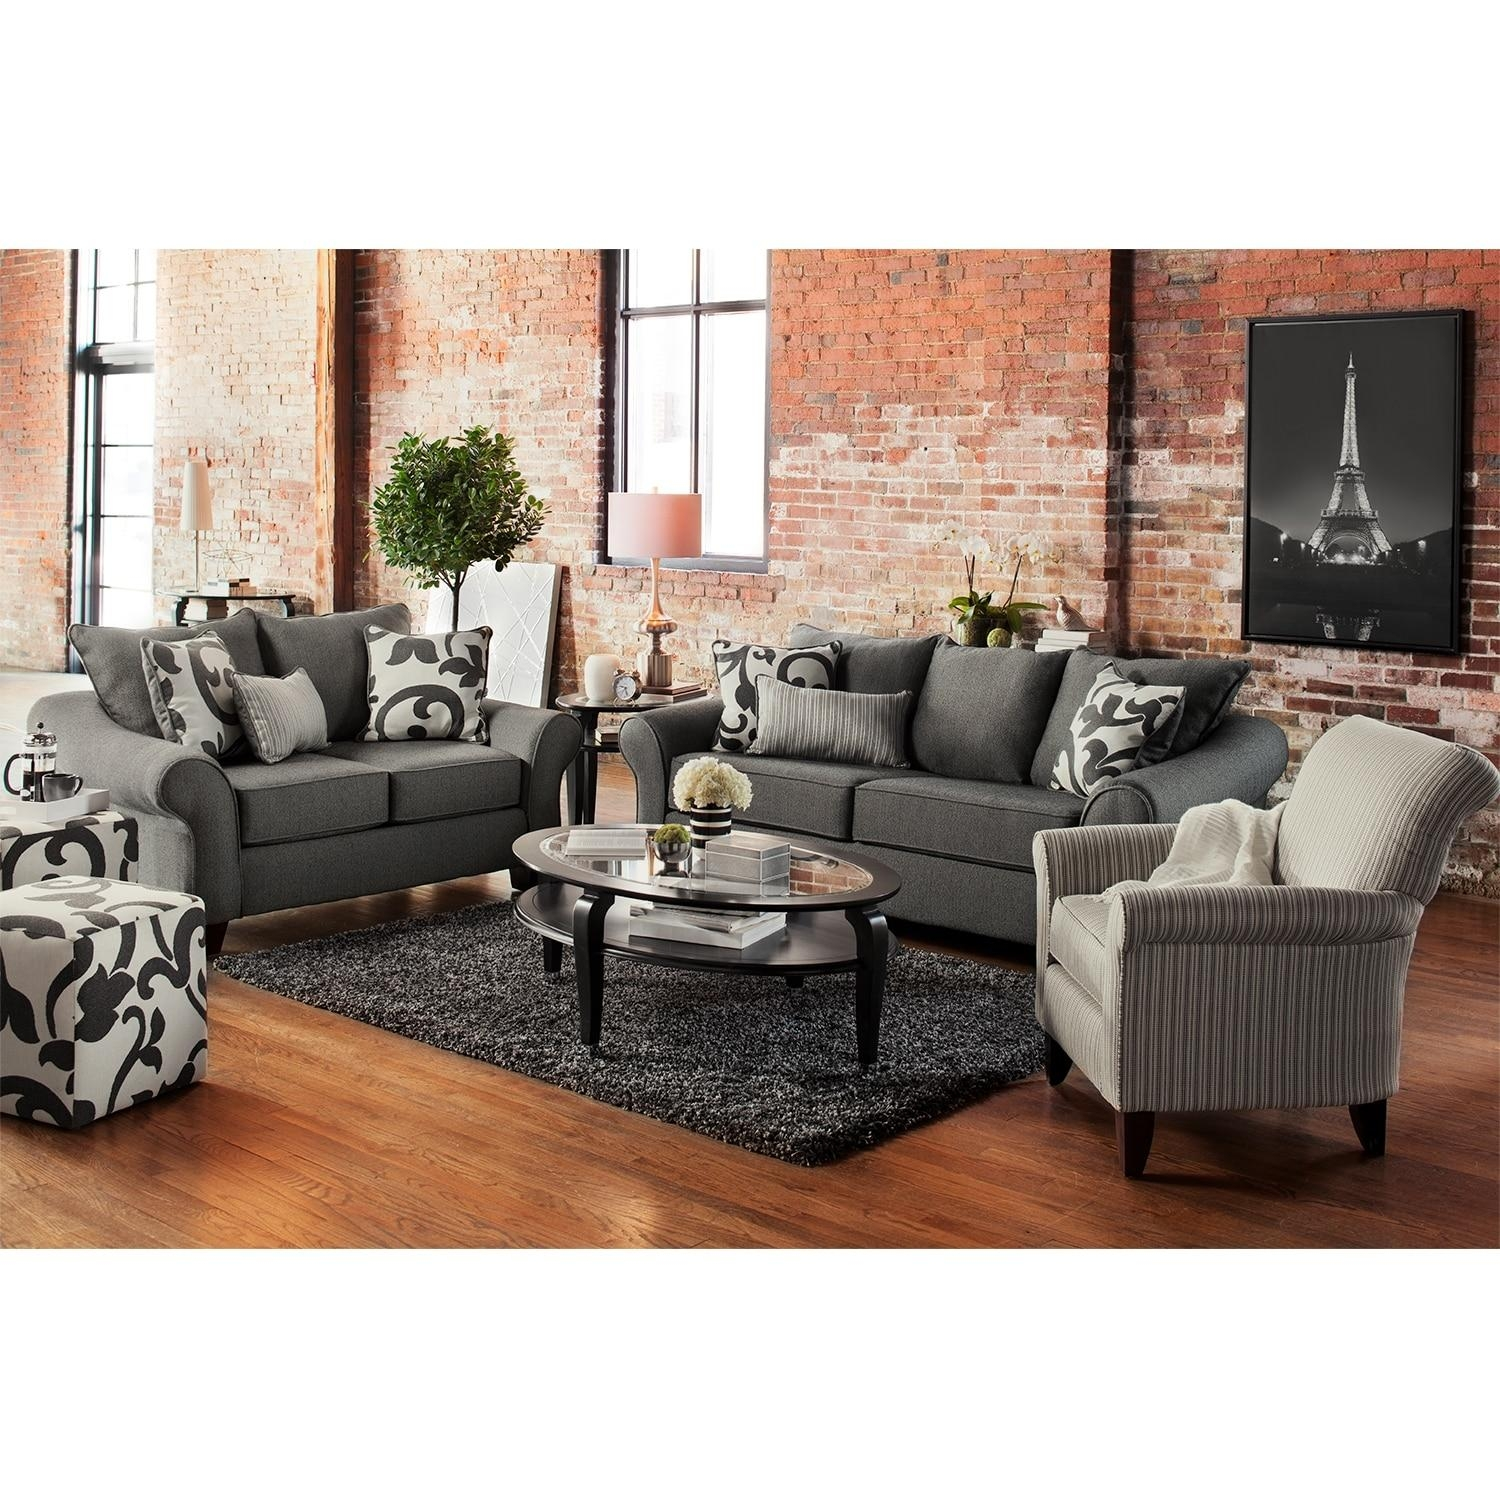 Colette Sofa And Loveseat Set – Gray | Value City Furniture Inside Sofa Loveseat And Chairs (View 3 of 20)